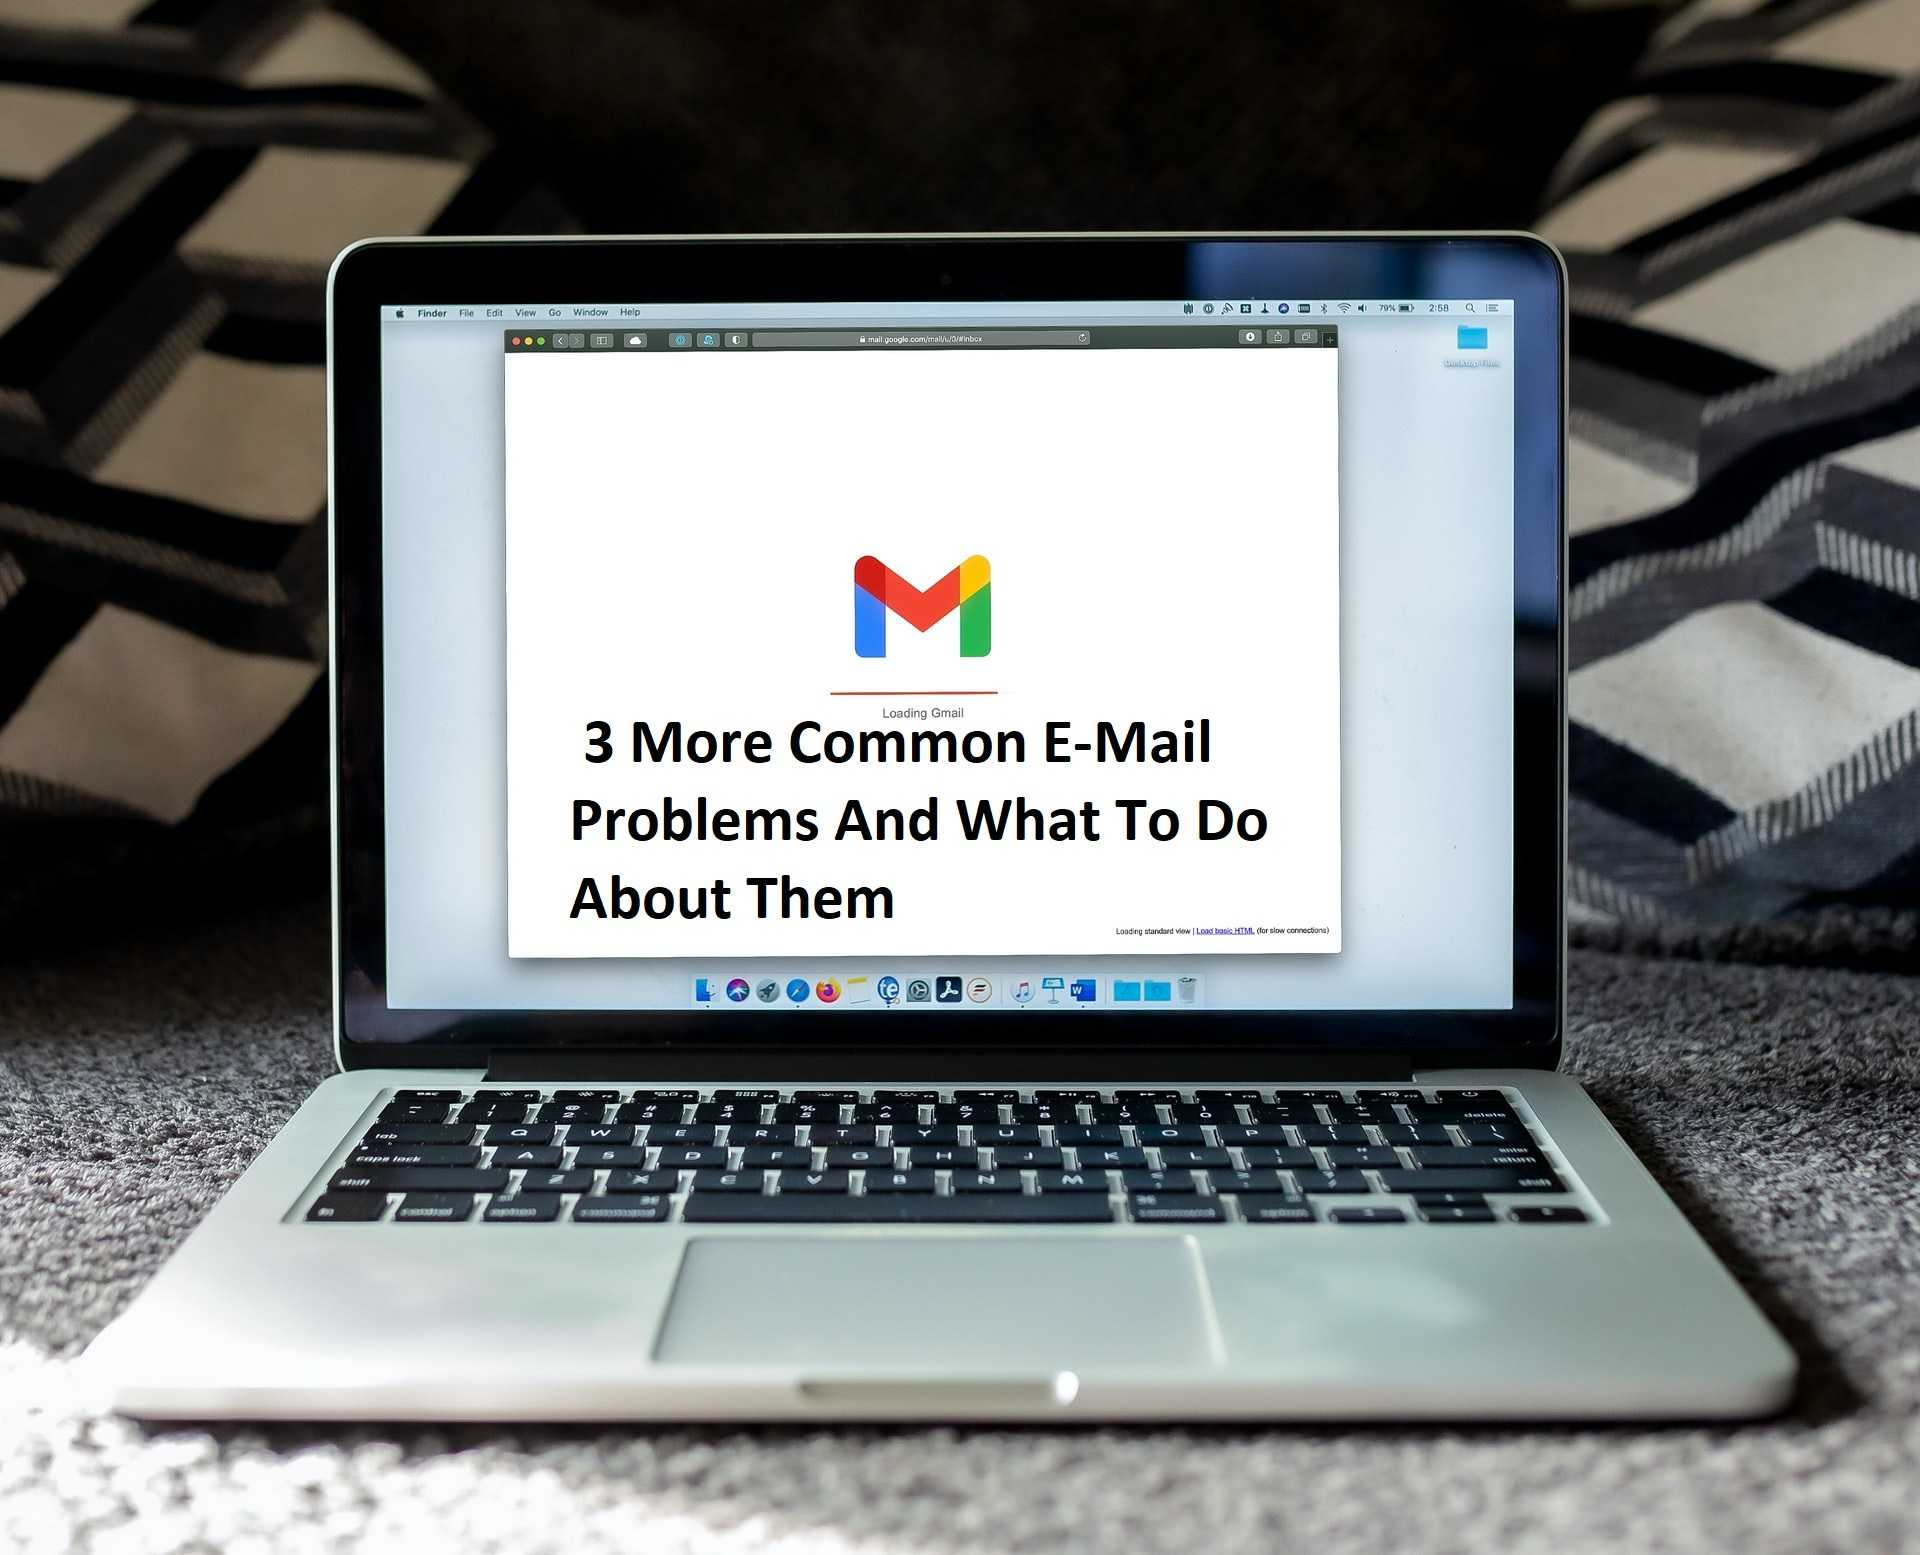 3 More Common E-Mail Problems And What To Do About Them